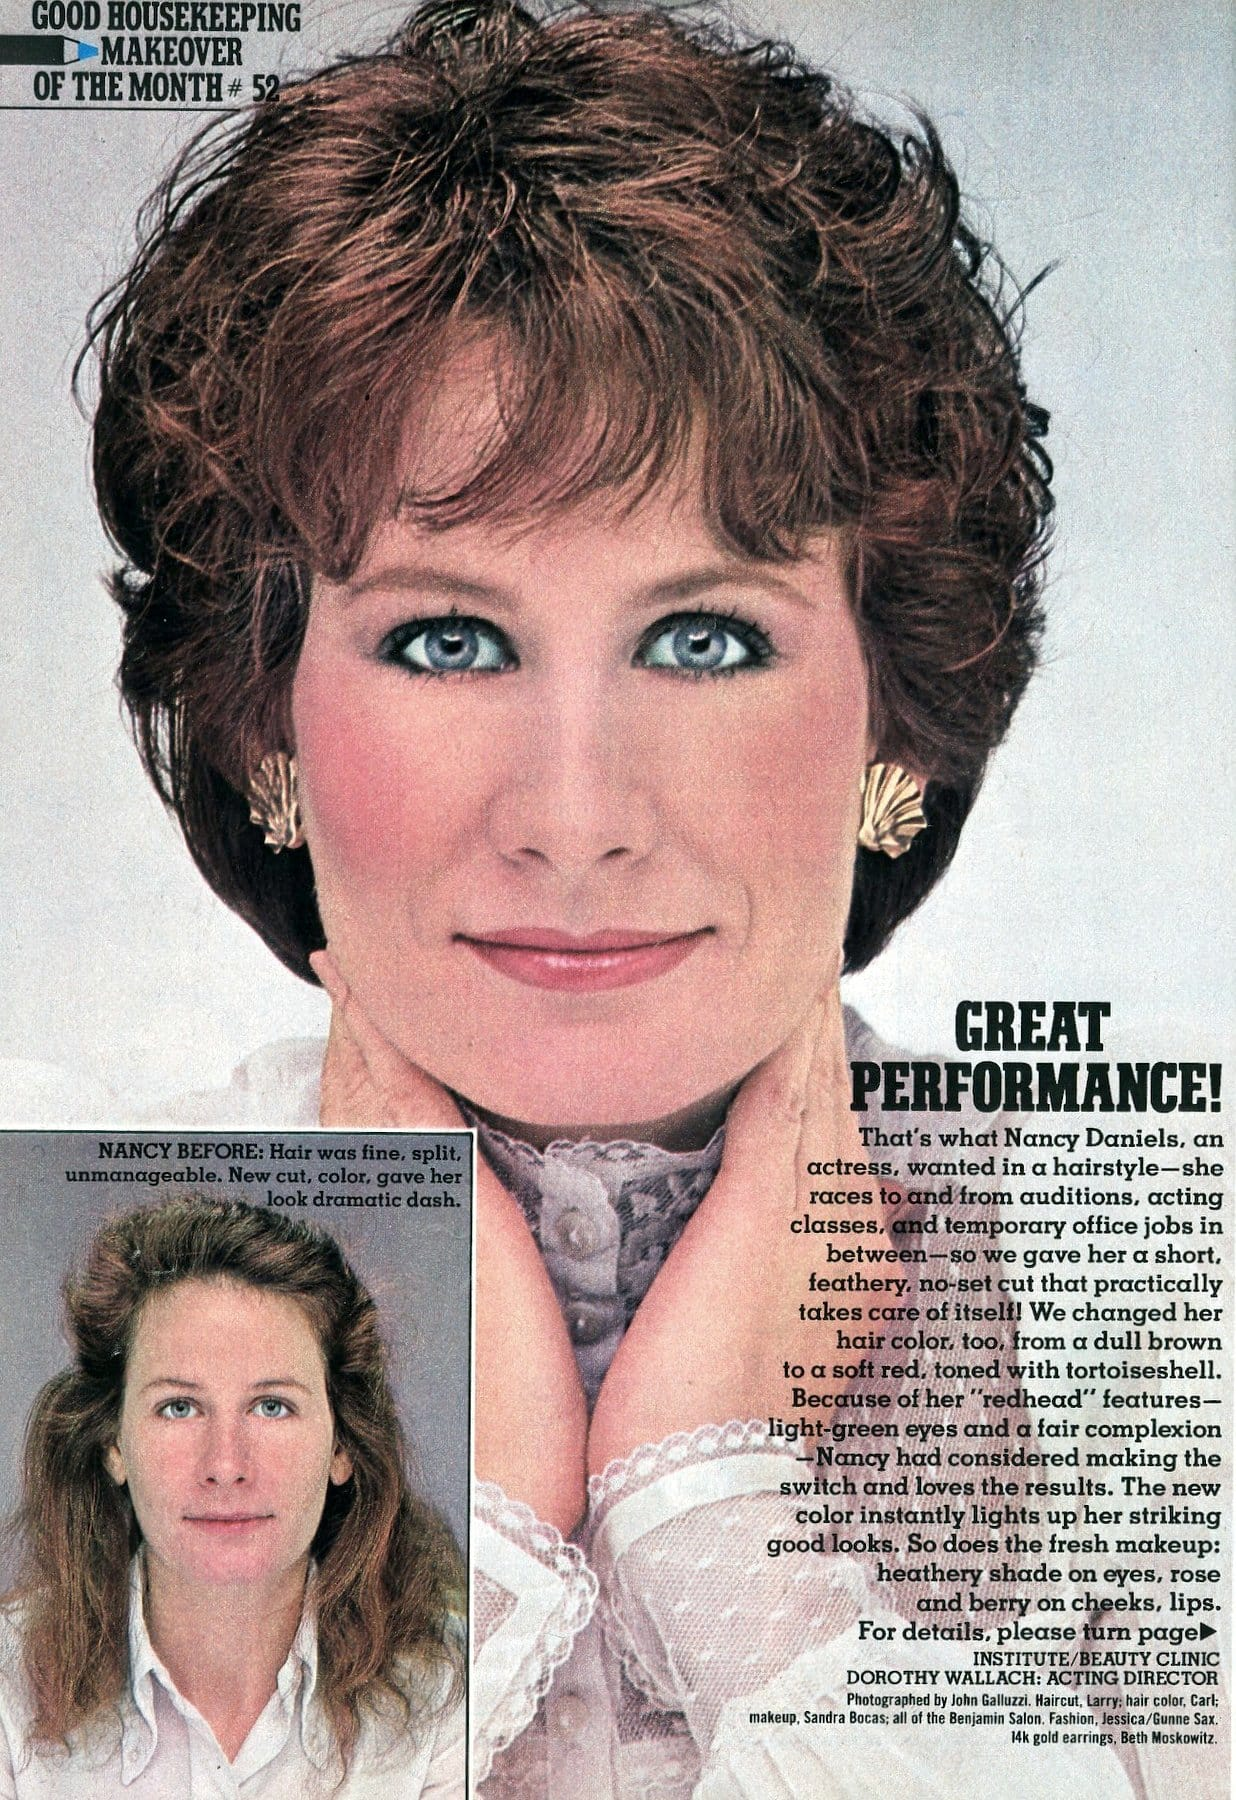 Eighties beauty makeover before and after from 1982